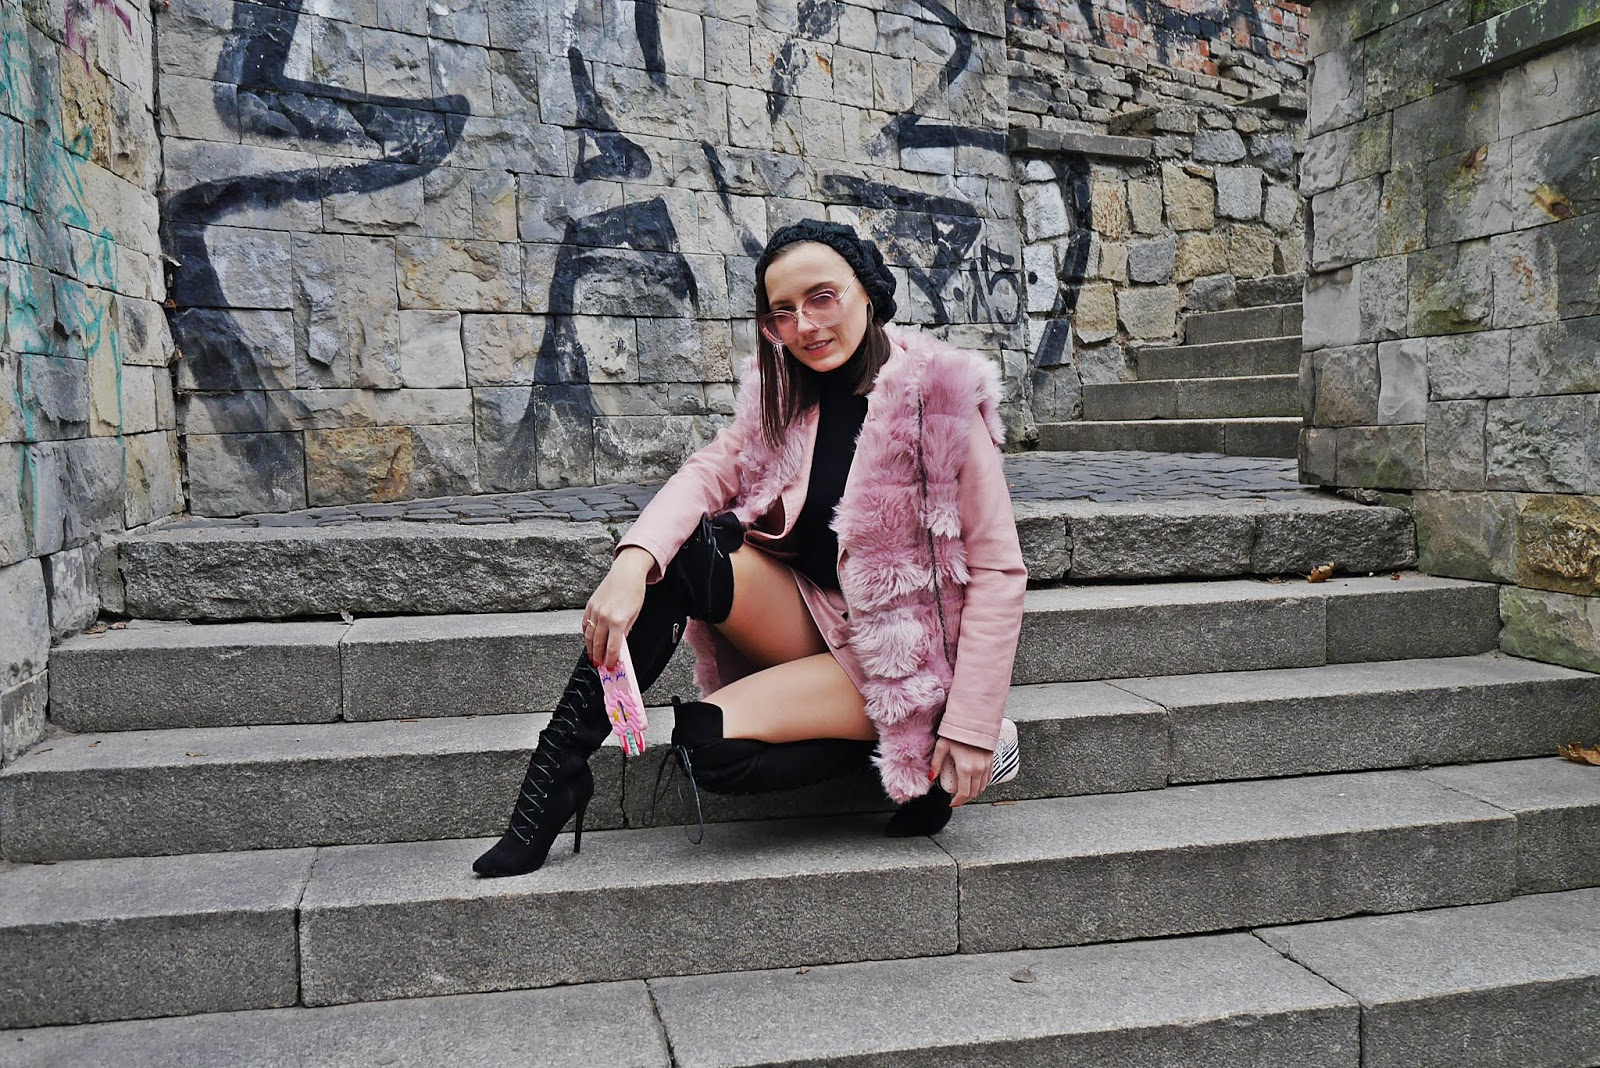 fur west jacket high knee boots turtleneck sweater karyn fashion blogger ootd outfit look